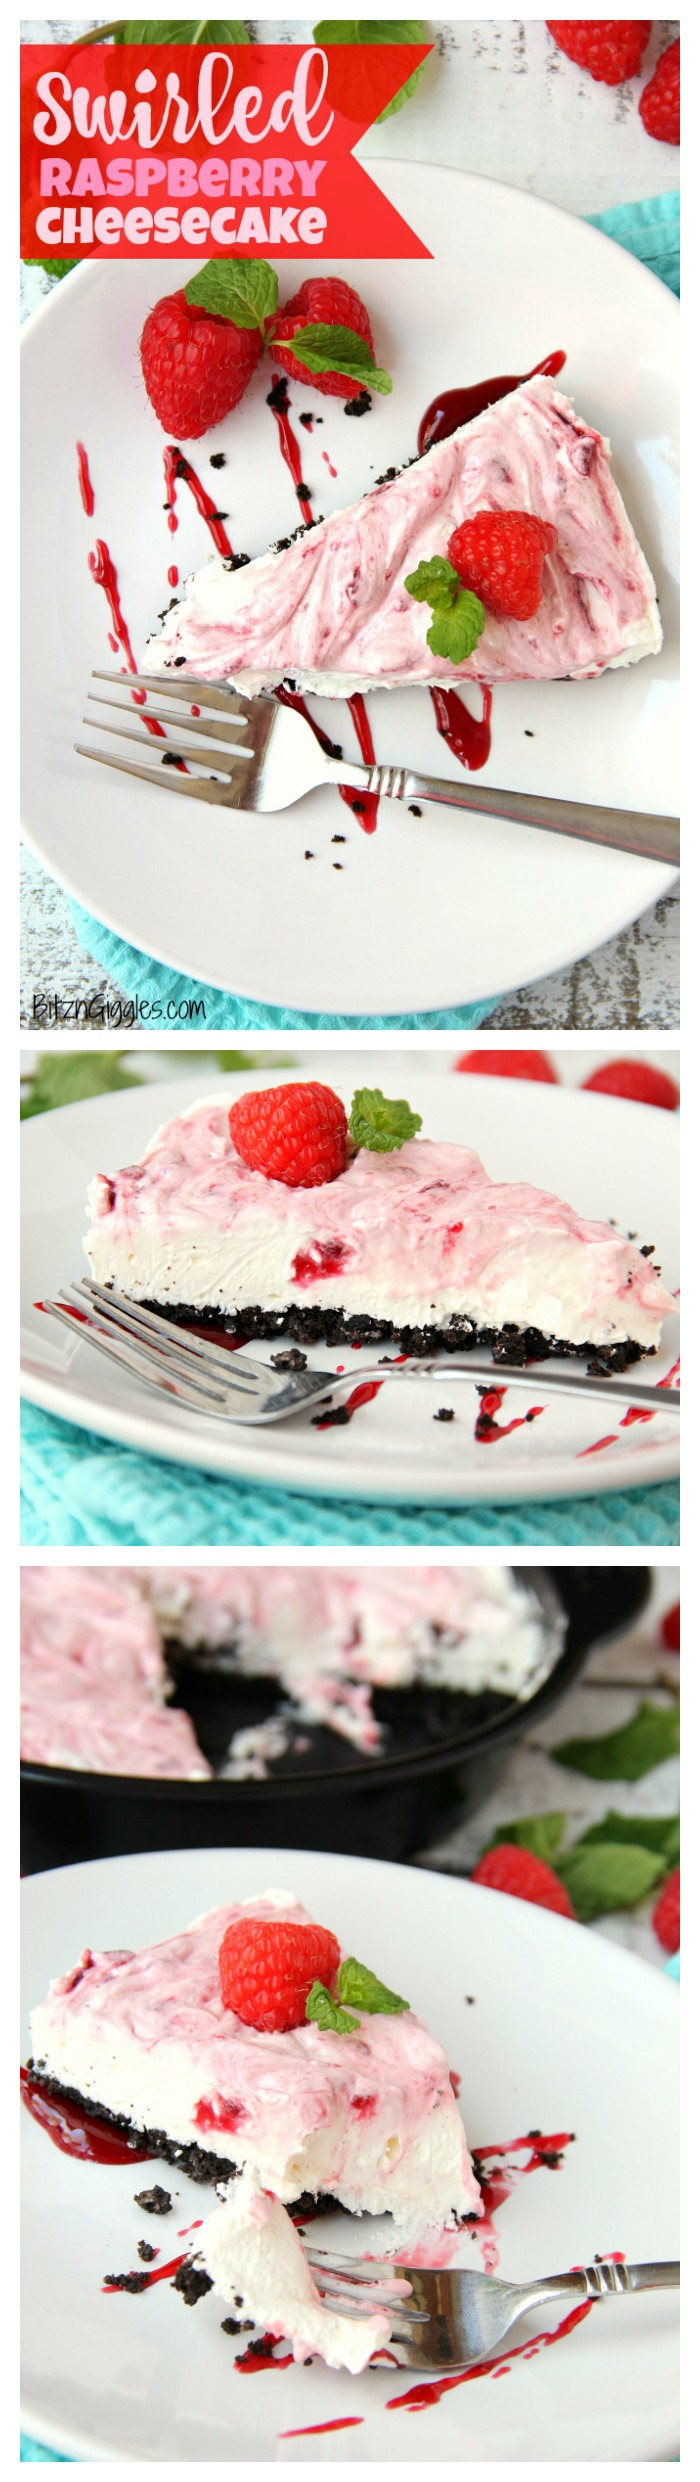 Swirled Raspberry Cheesecake -A fluffy Oreo-crust cheesecake with decadent raspberry swirls.